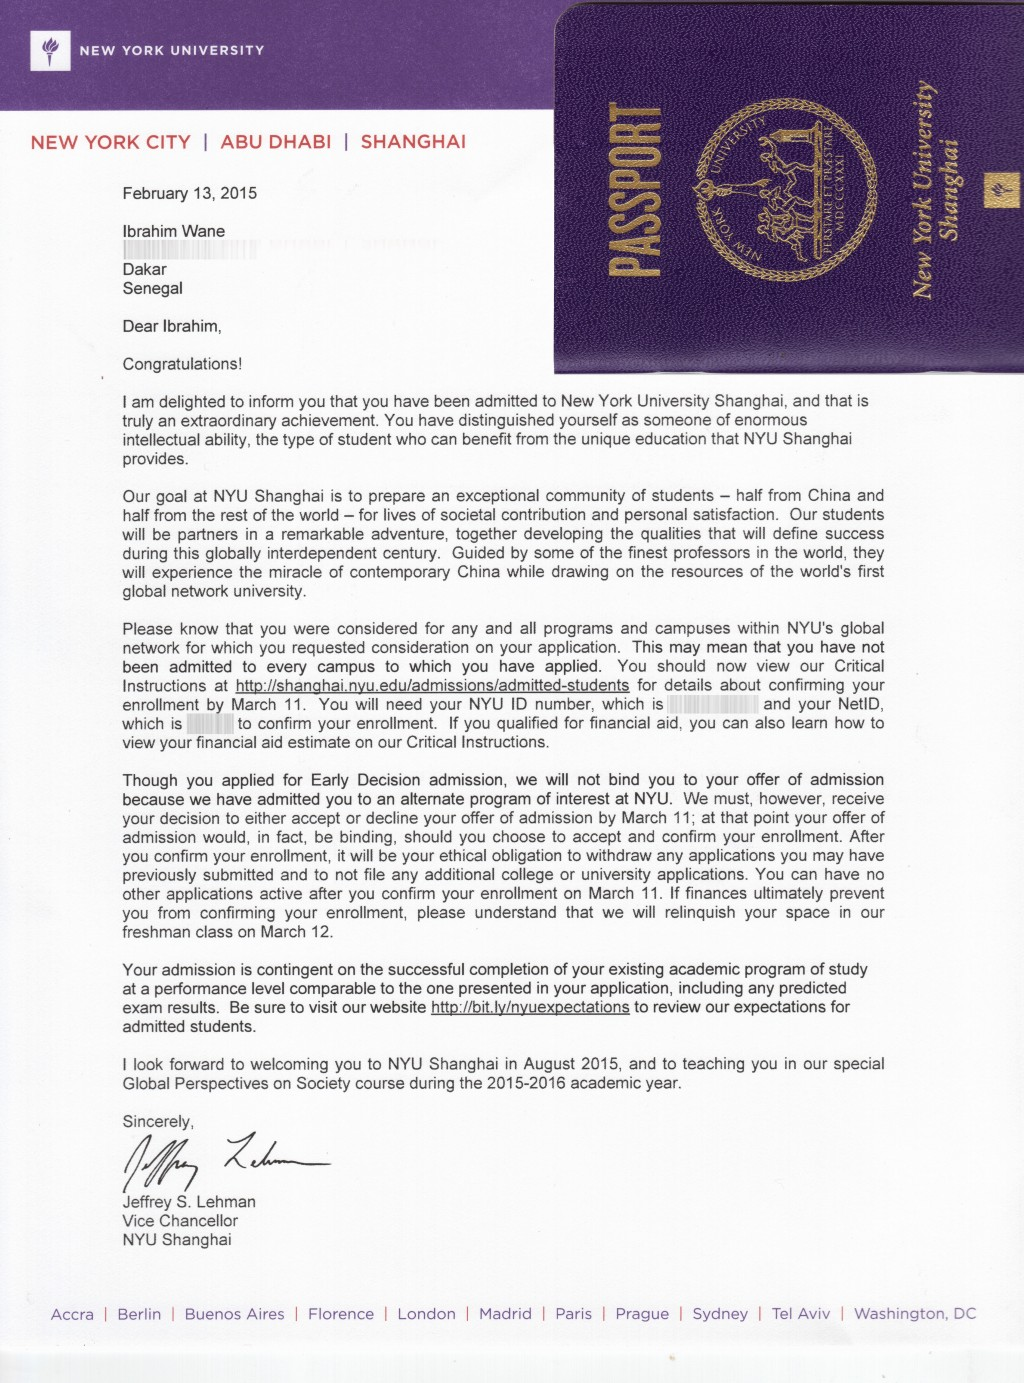 015 Nyush Acceptance Letter With Passport Blurred Why Nyu Essay Unforgettable 2018 Stern Reddit Large